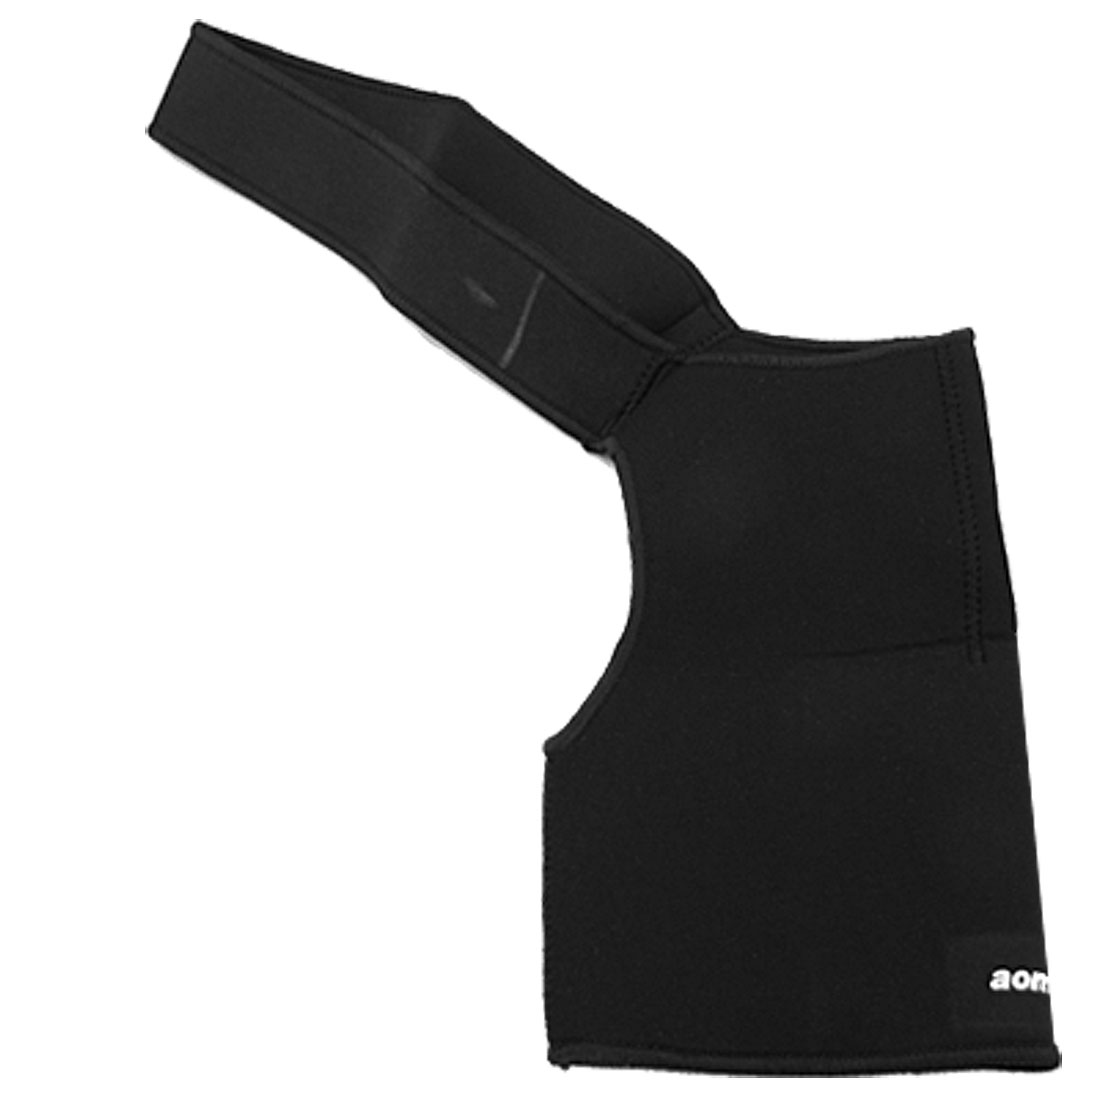 Black Neoprene Single Shoulder Support Wrap Brace